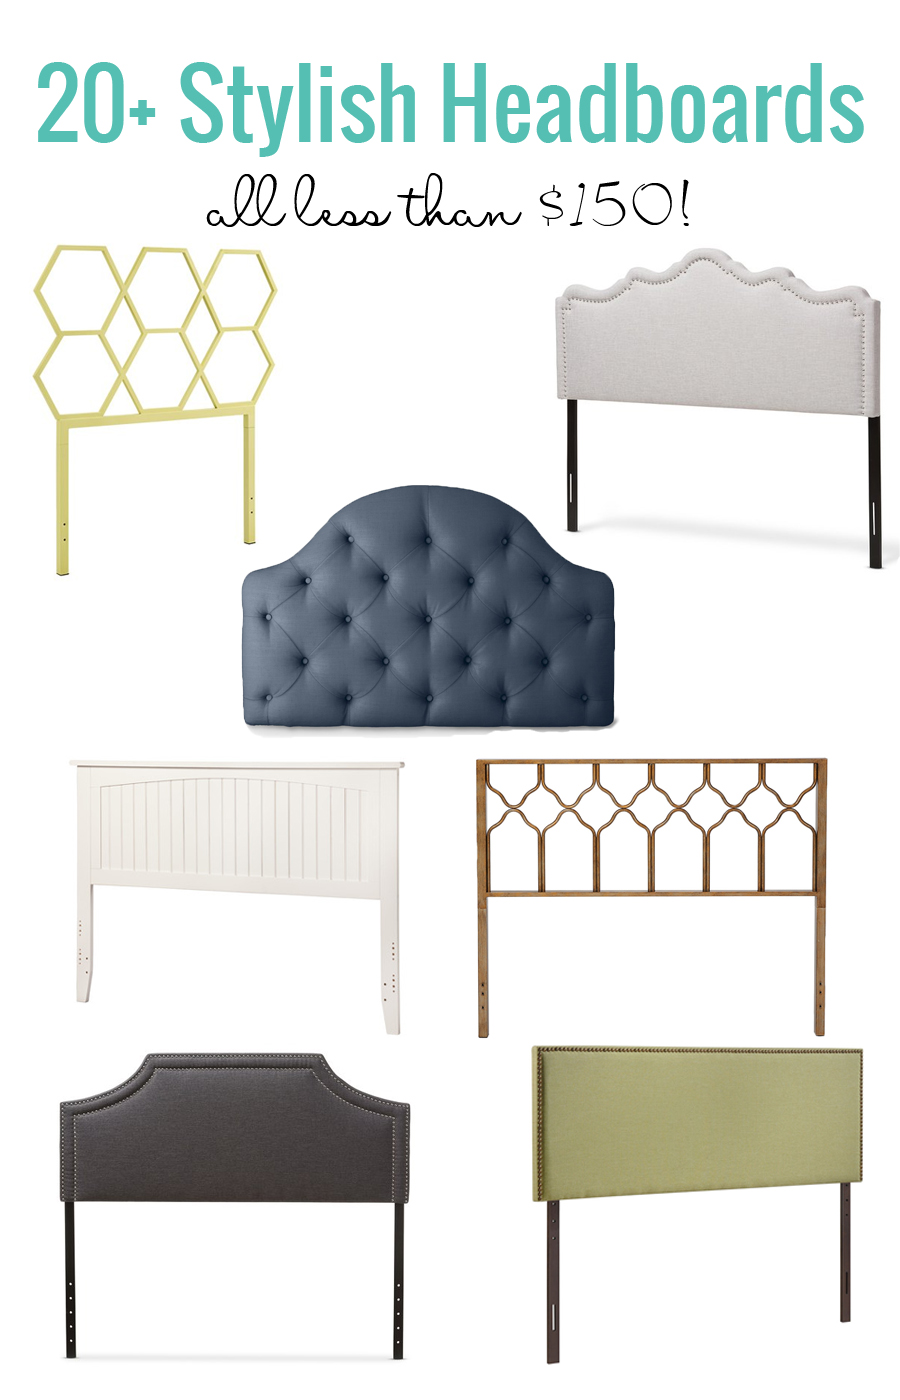 Loving this round-up of 20+ stylish headboards that are all less than $150! And many are even under $100. Great mix of upholstered headboards, metal headboards and wood headboards!